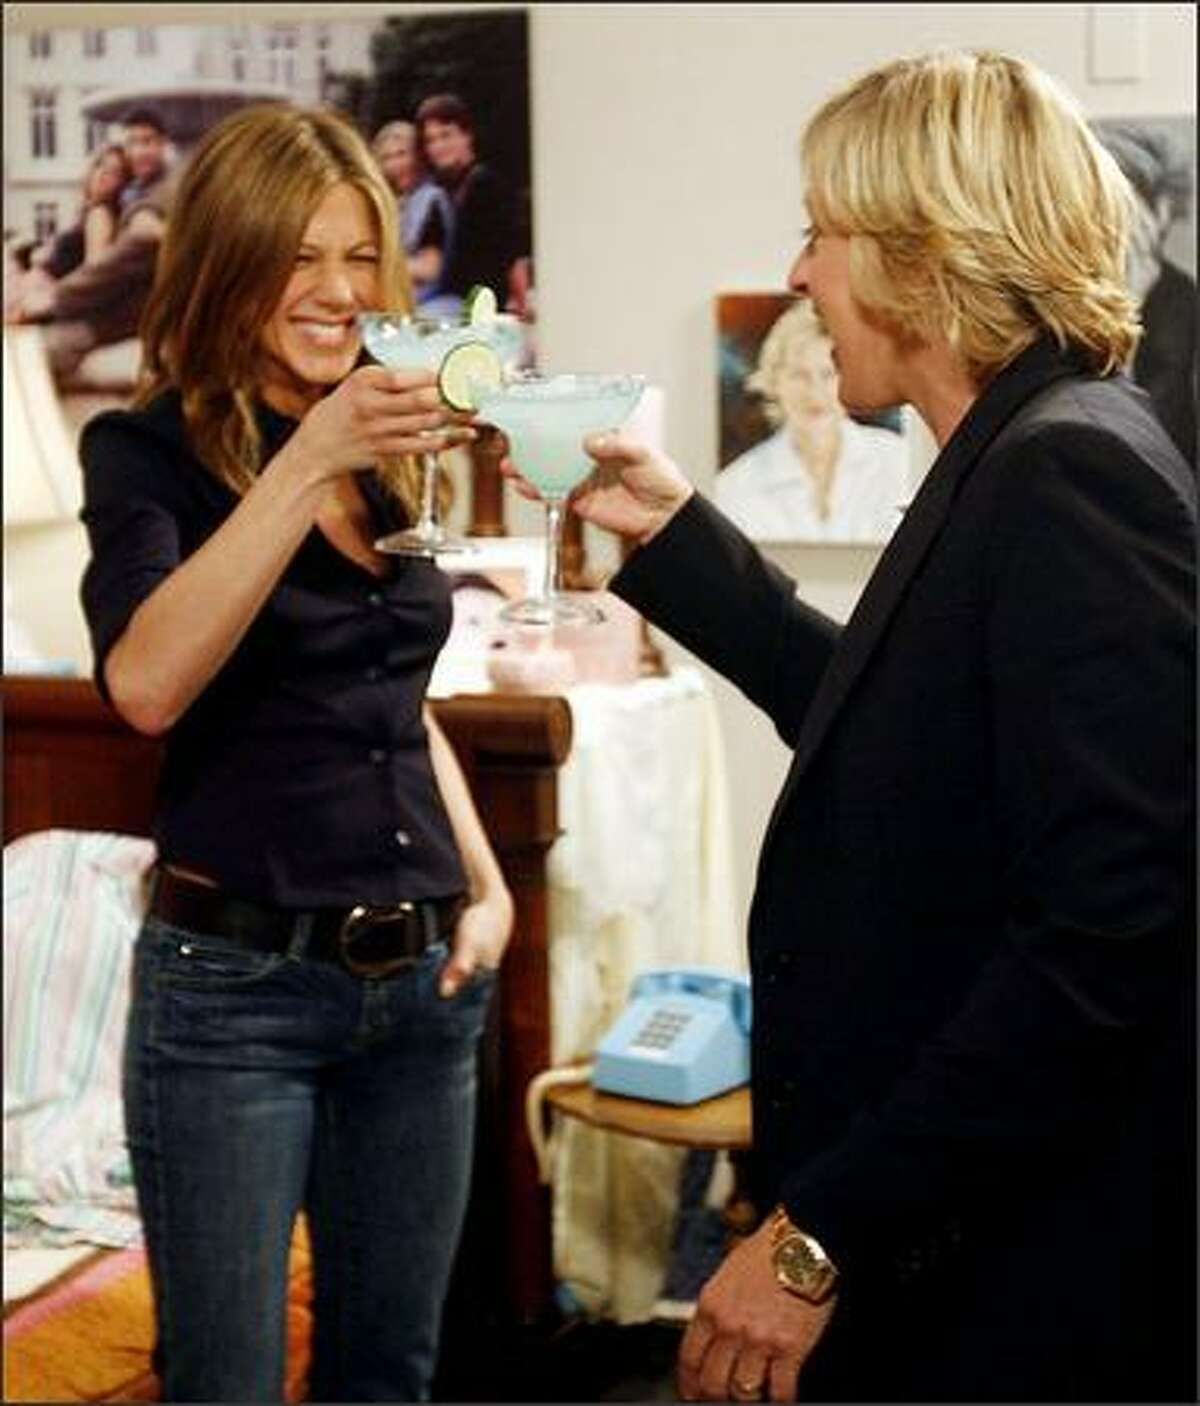 """Another reason to love Ellen: She provides housing for her celebrity friends. On Friday, the popular talk-show host unveiled her surprise to guest Jennifer Aniston -- a custom-made backstage suite decorated with """"Friends"""" pics and portraits of herself. DeGeneres presented it to Aniston as a paparazzi-free zone."""